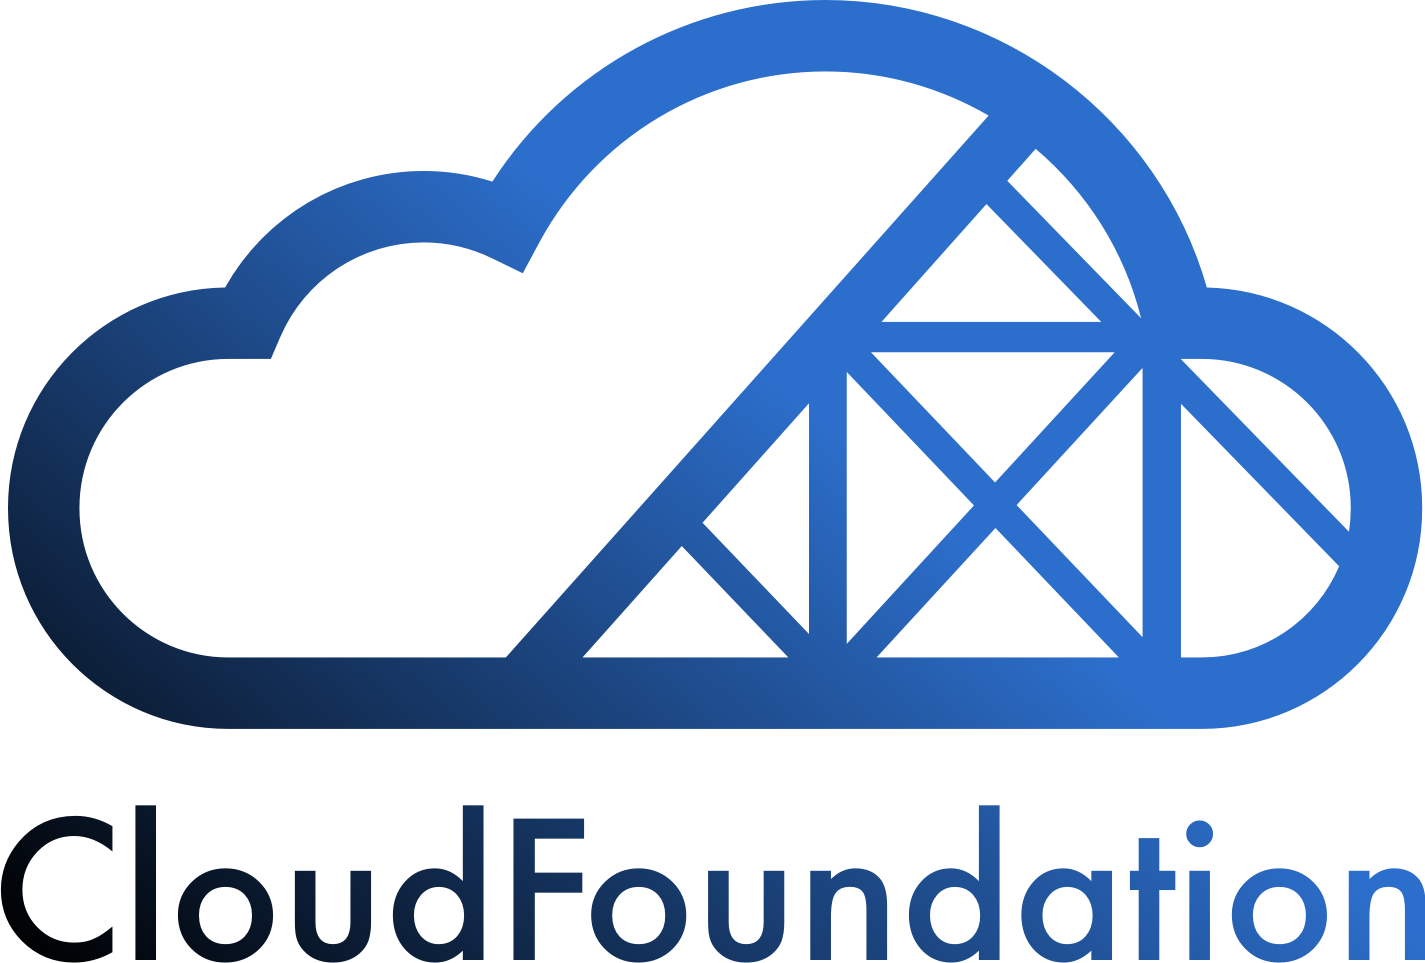 GitHub - jcolemorrison/cloudfoundation: The CLI tool for